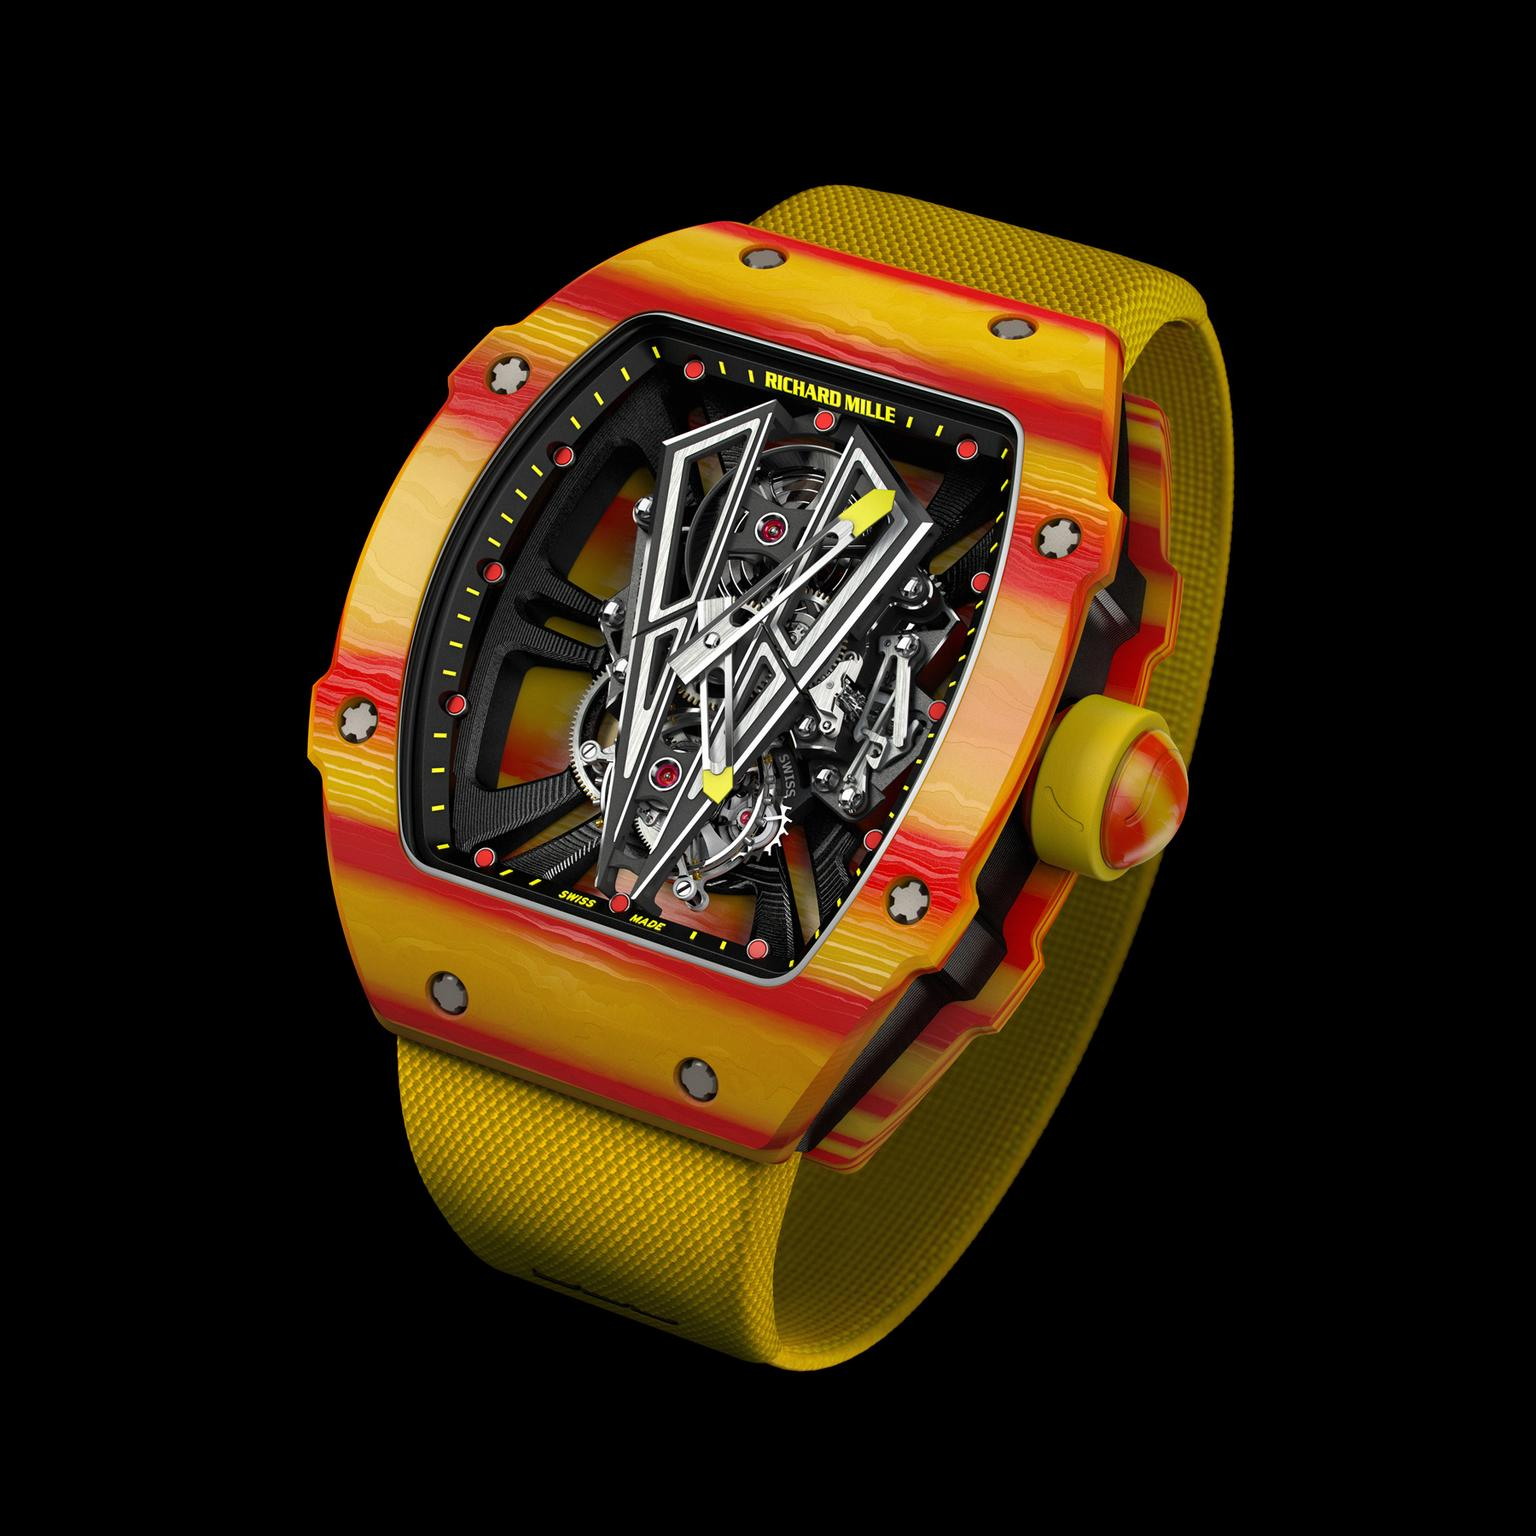 Rafael Nadal Richard Mille RM 27-03 watch skeletonised bridges